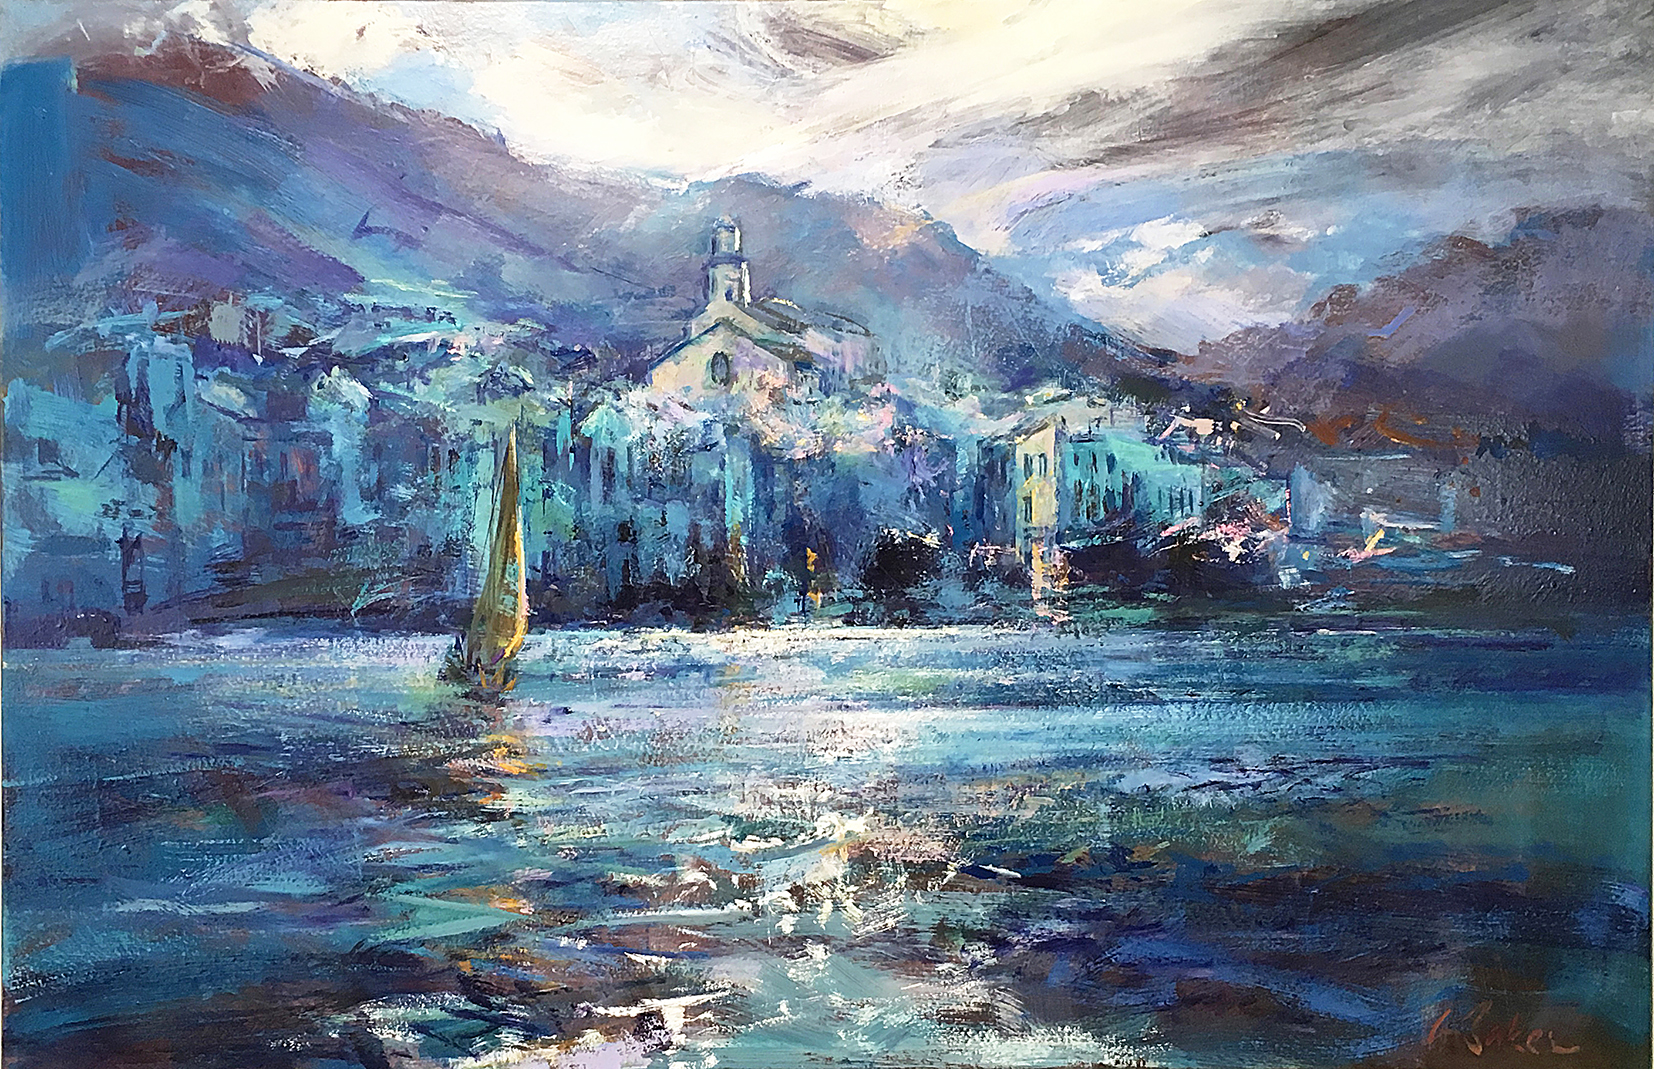 Greg Baker - Cadaques - A Storm over Catalonia (oil on canvas, 100 x 150cms)